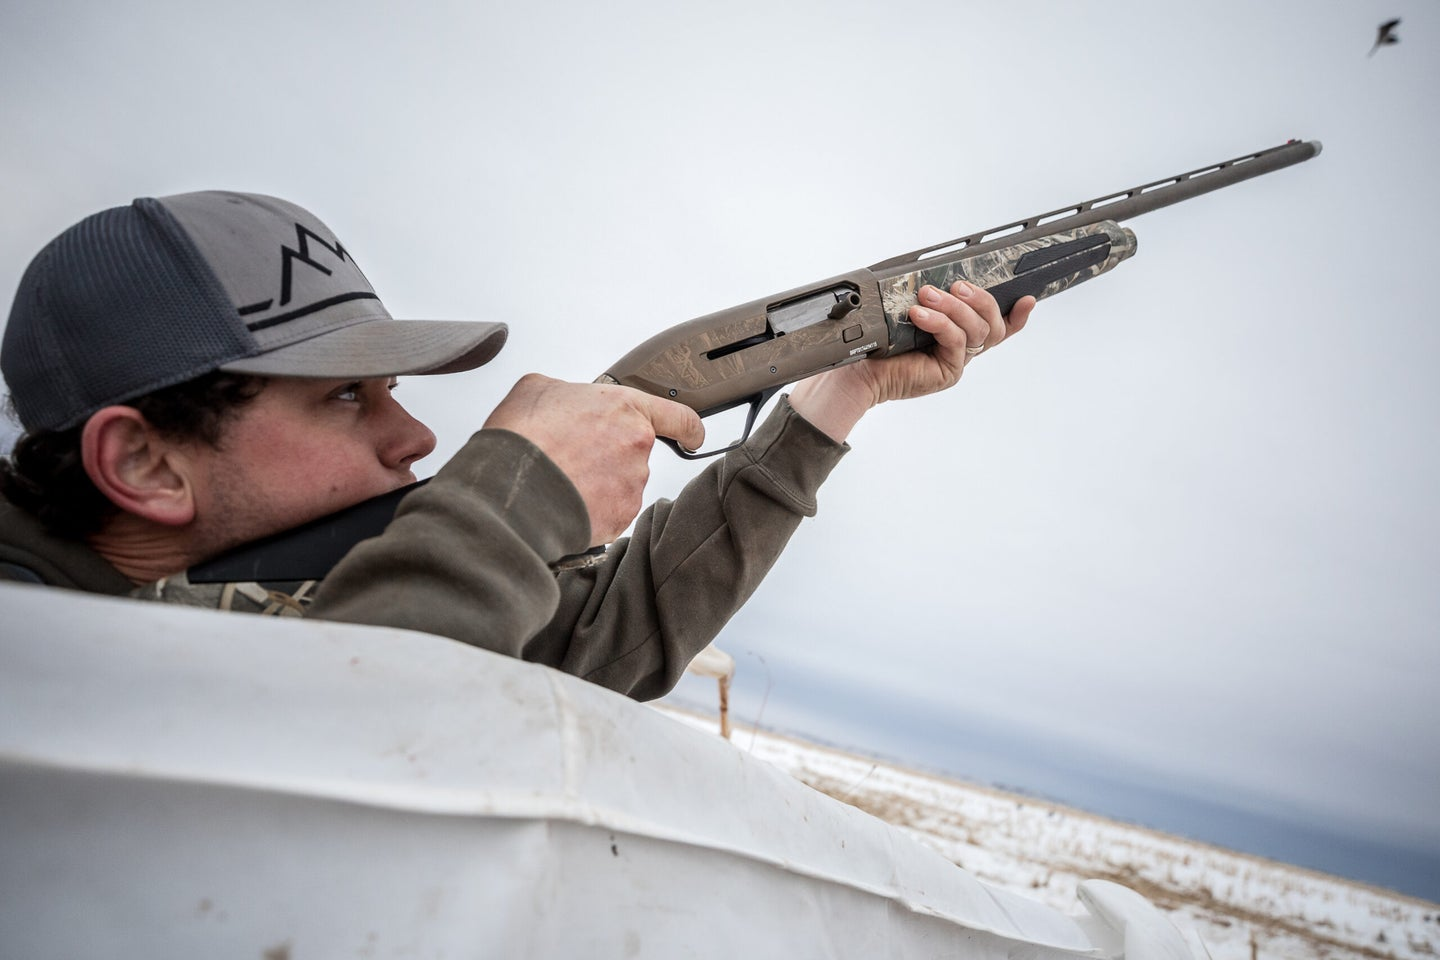 The new Maxus II from Browning.